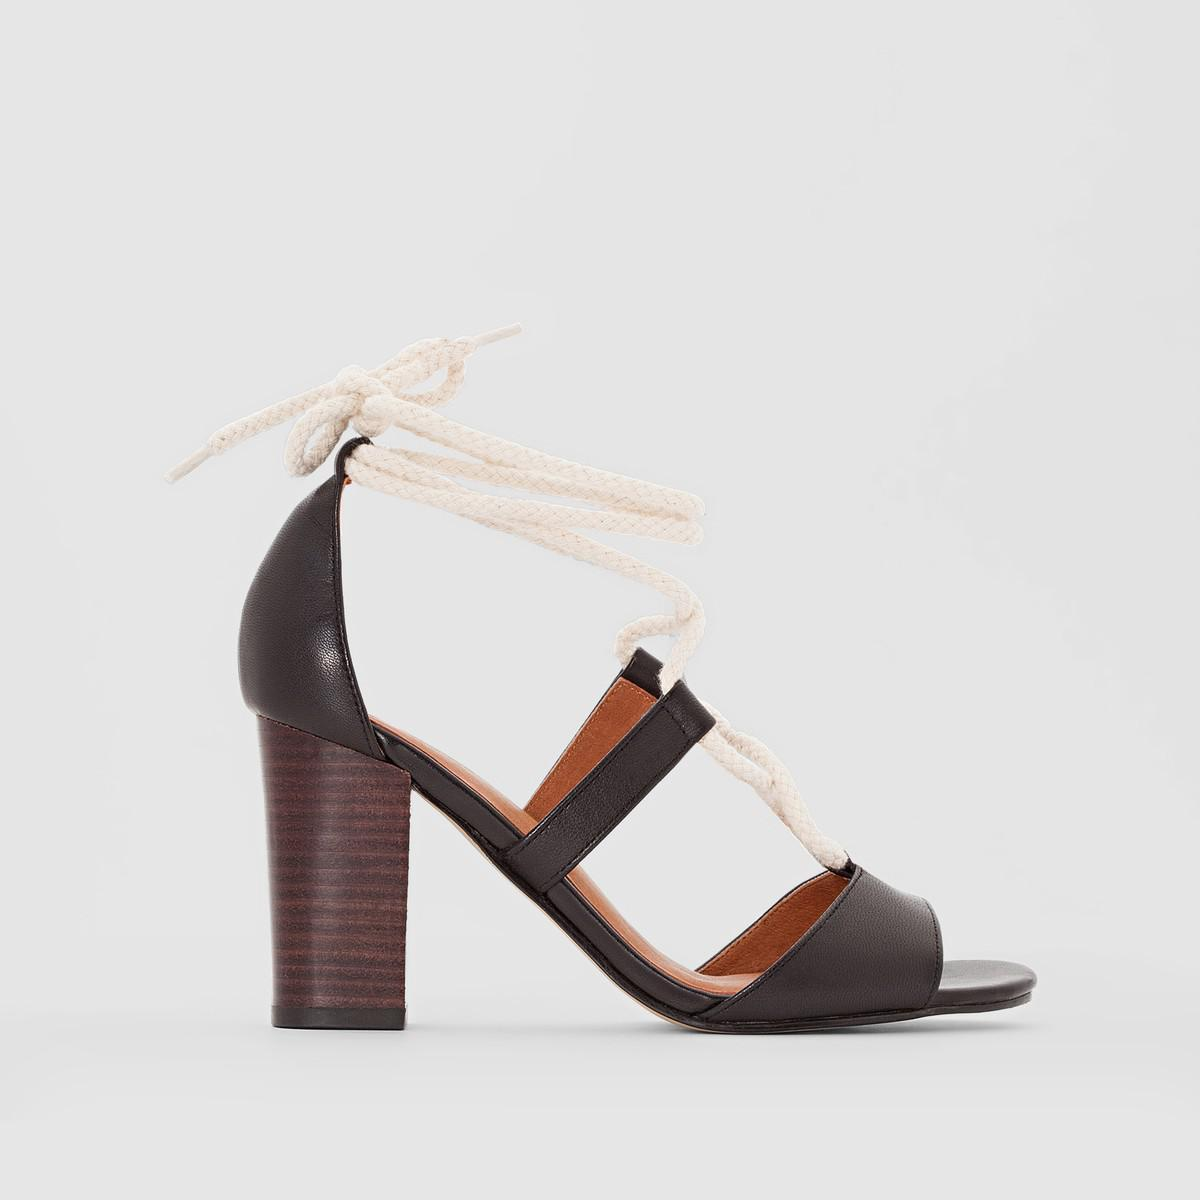 new styles sale online cheap sale 2014 new La Redoute Collections Leather Sandals with Openwork Straps XQumUP6H